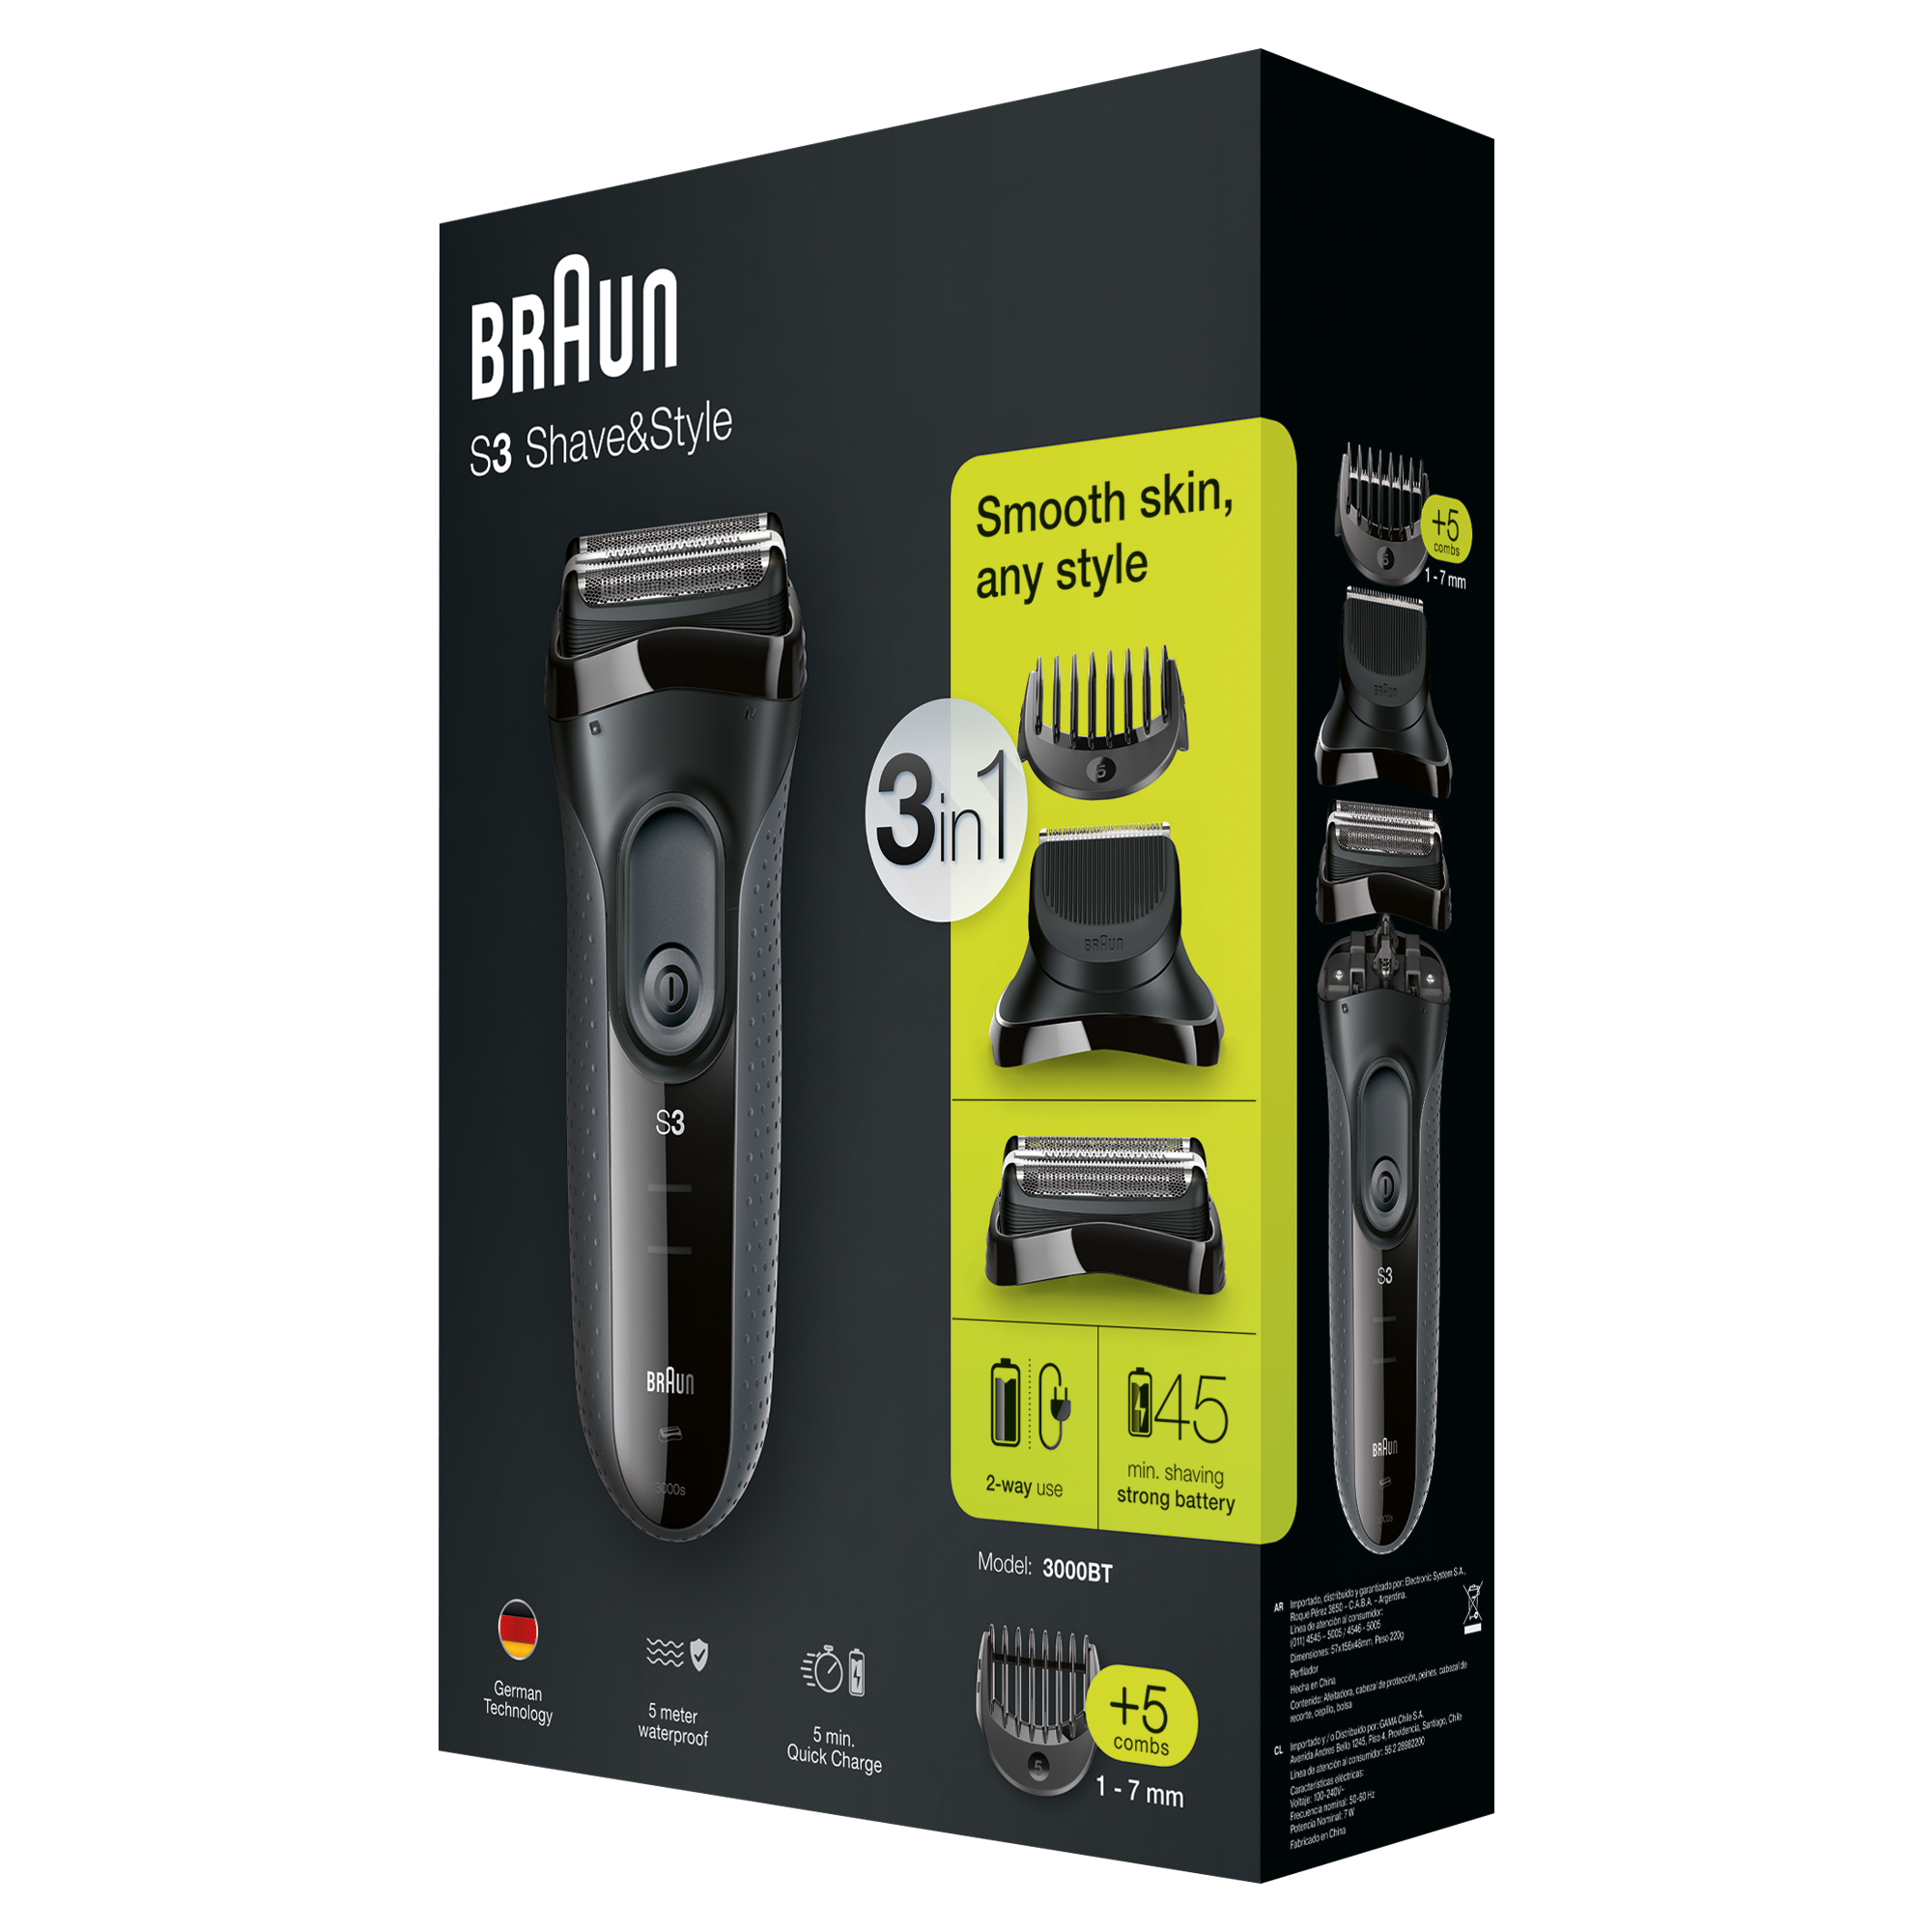 Braun Series 3 - 3000BT Shave & Style 3-in-1 matu, bārdas Trimmeris